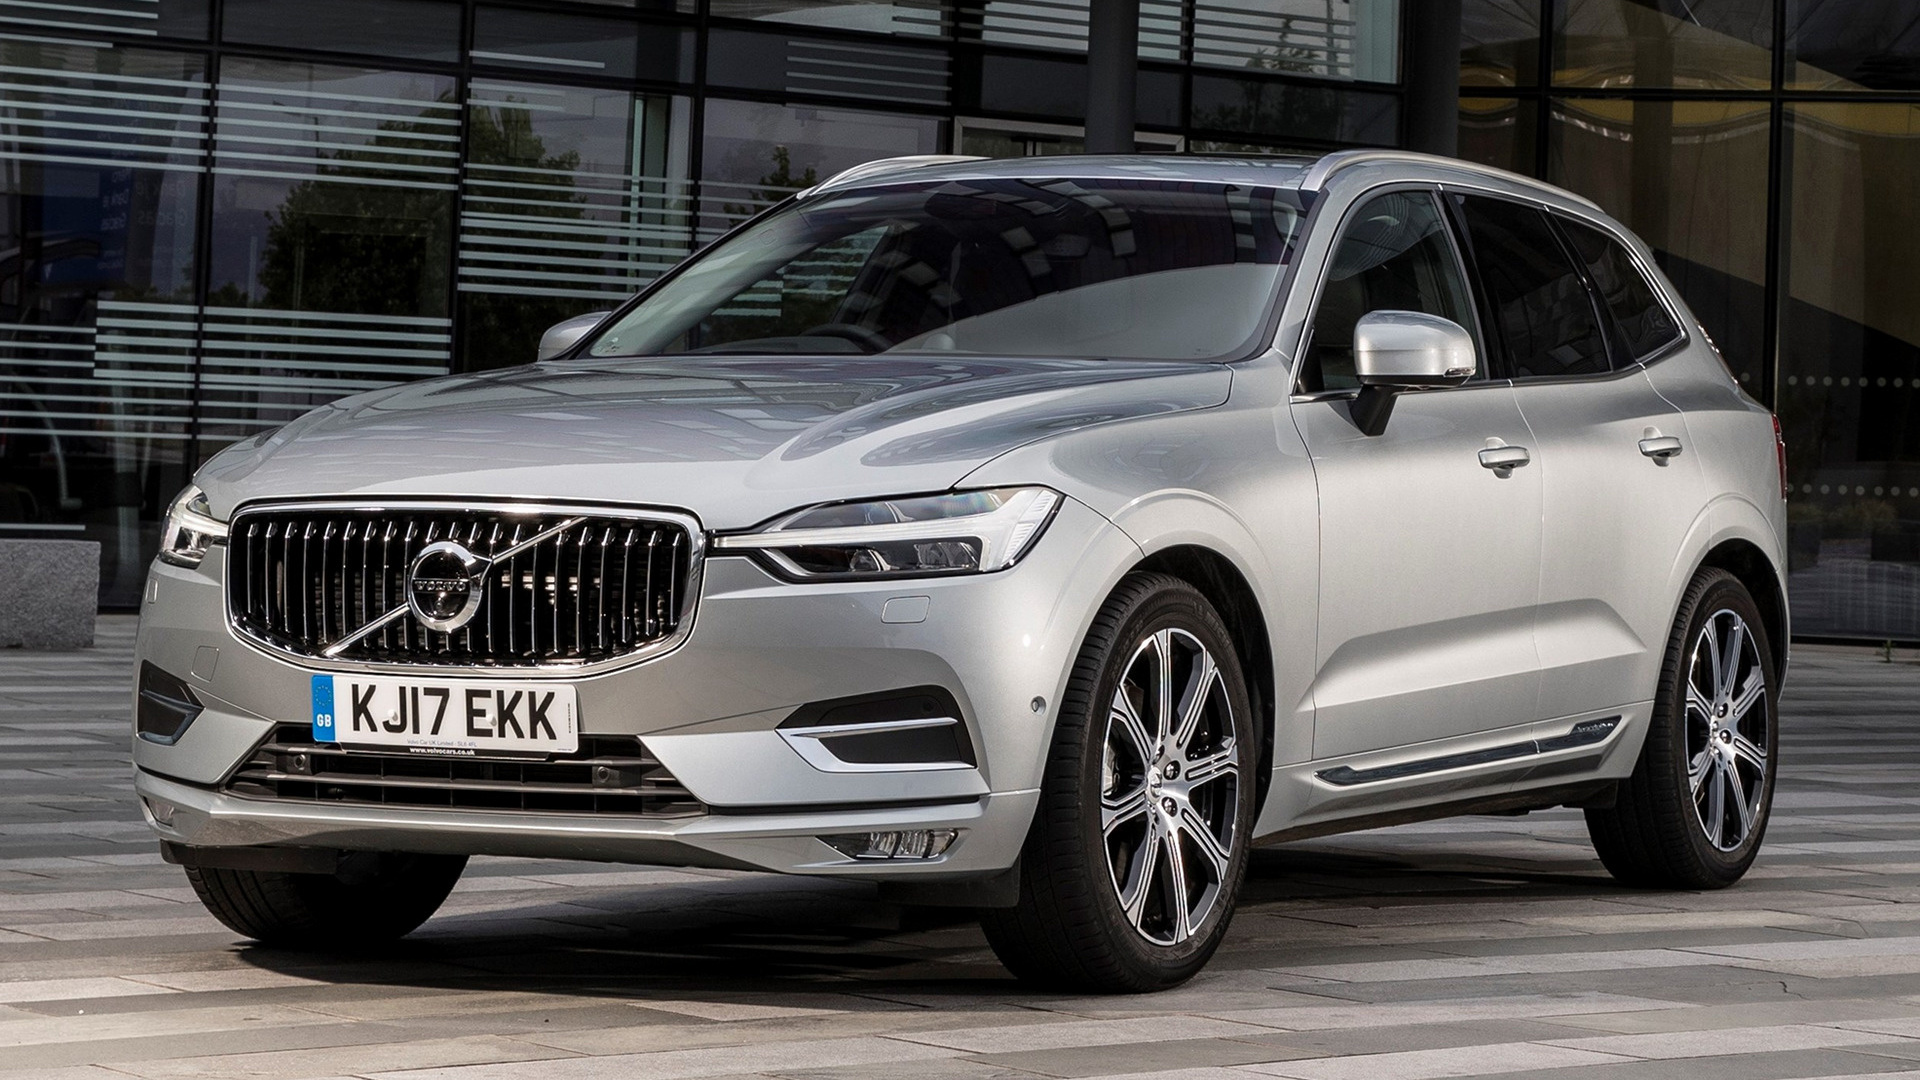 2017 volvo xc60 uk wallpapers and hd images car pixel. Black Bedroom Furniture Sets. Home Design Ideas